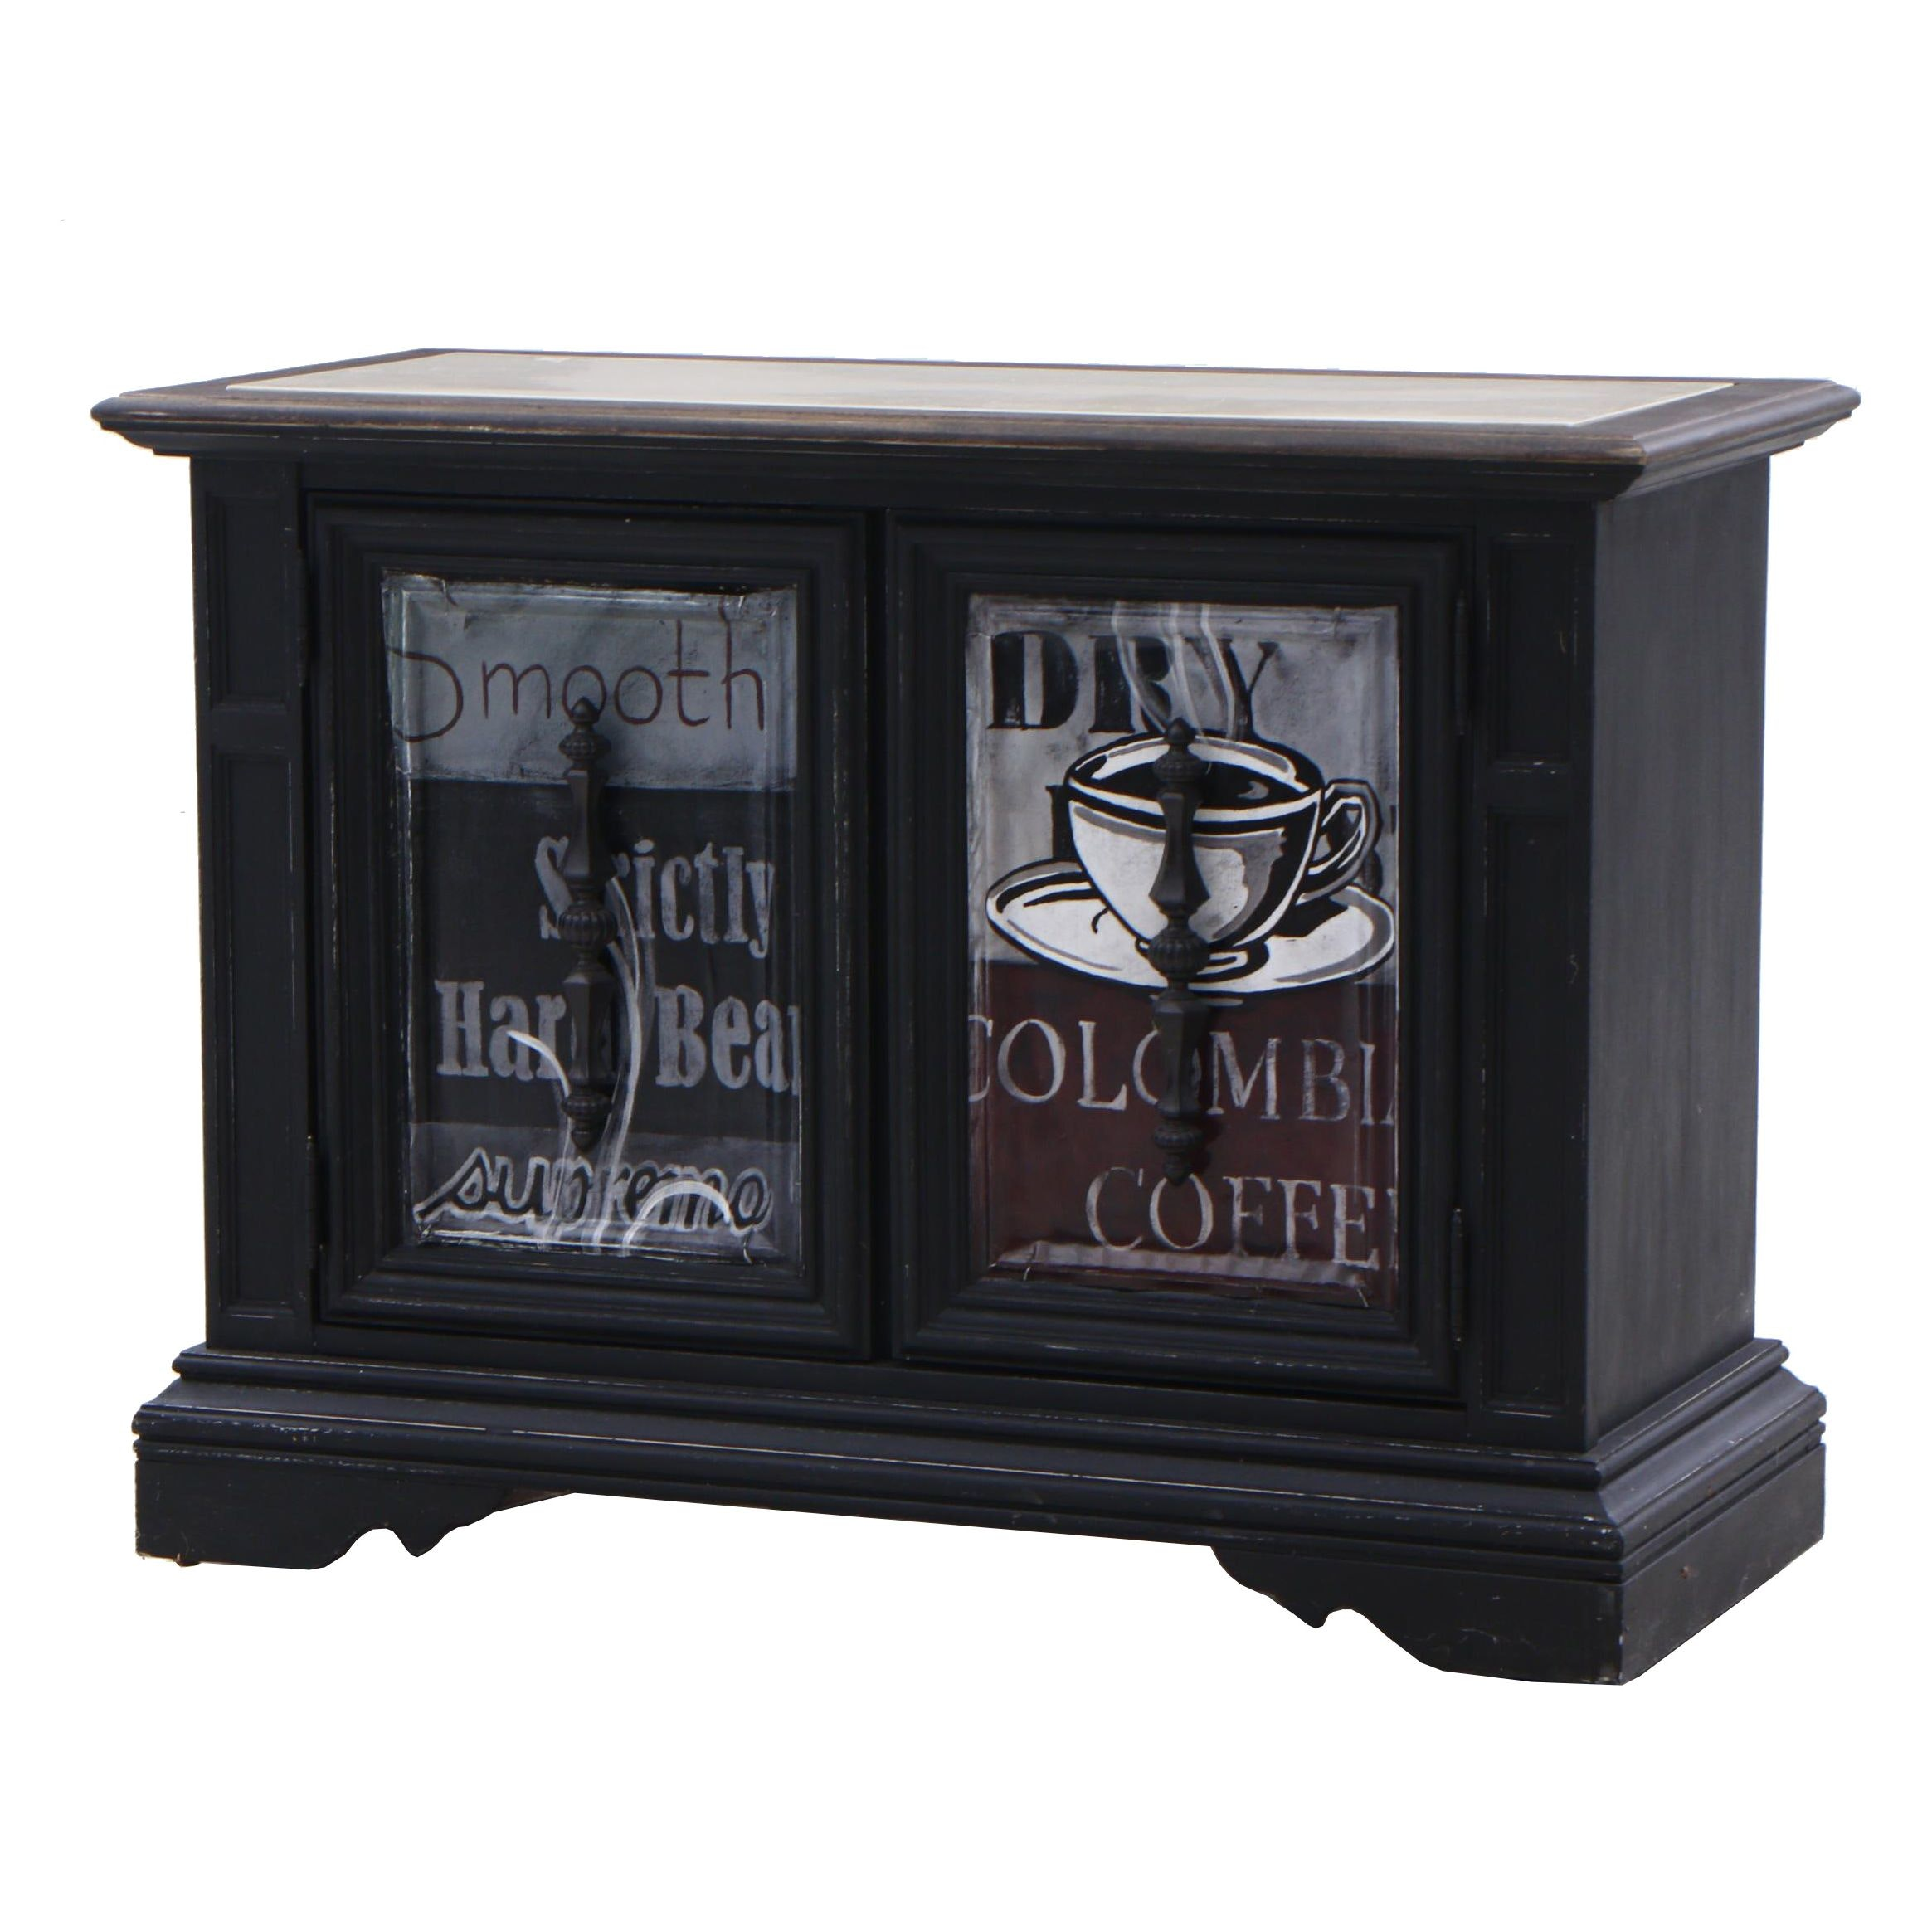 Rolling Coffee Themed Cabinet, Contemporary